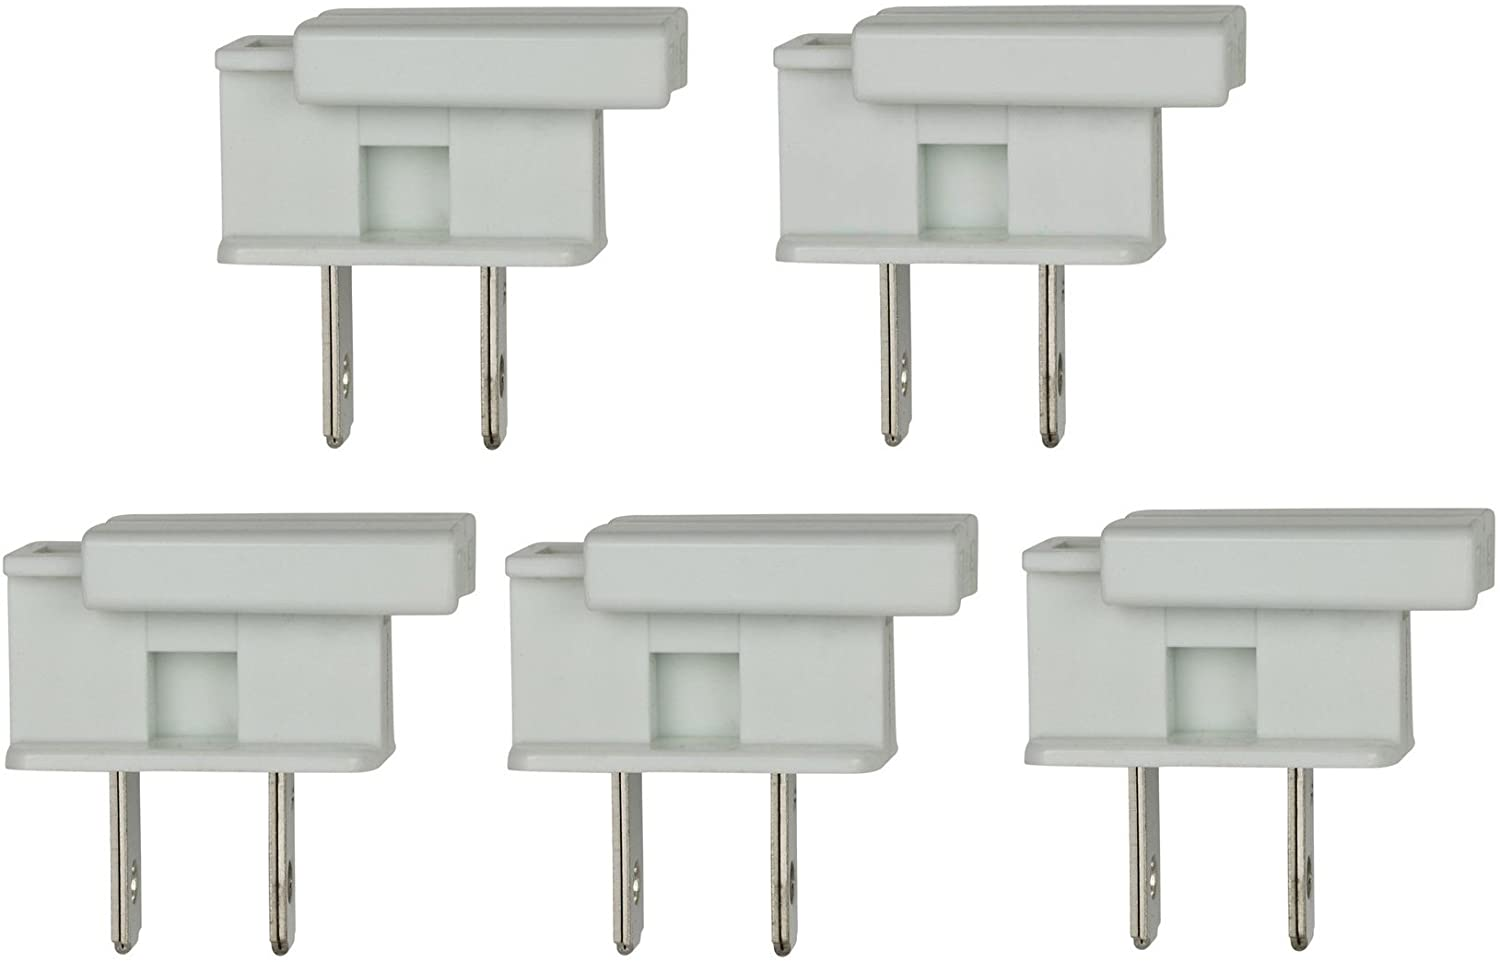 Creative Hobbies SPLUG, Easy Snap On End Plug, For SPT-1 Wire, Residential Grade, Polarized, Non-Grounding, 8 Amp, 125 Volt, White, Pack of 5 Plugs